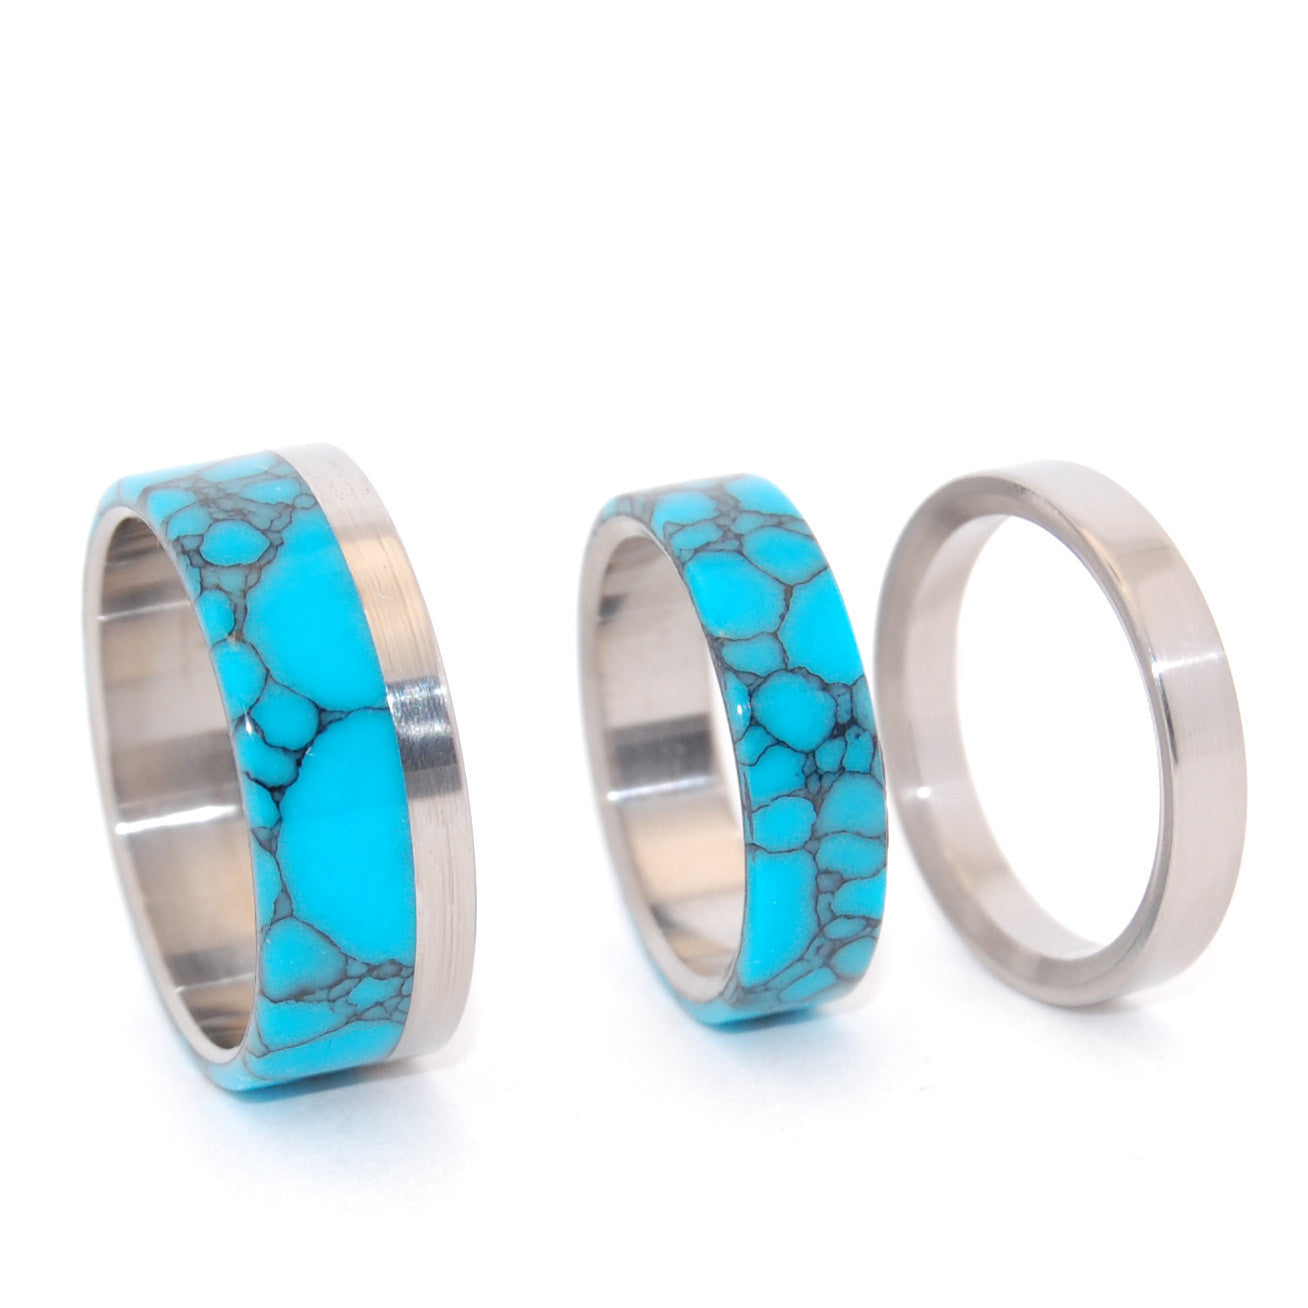 turquoise wedding rings turquoise wedding rings - Turquoise Wedding Rings